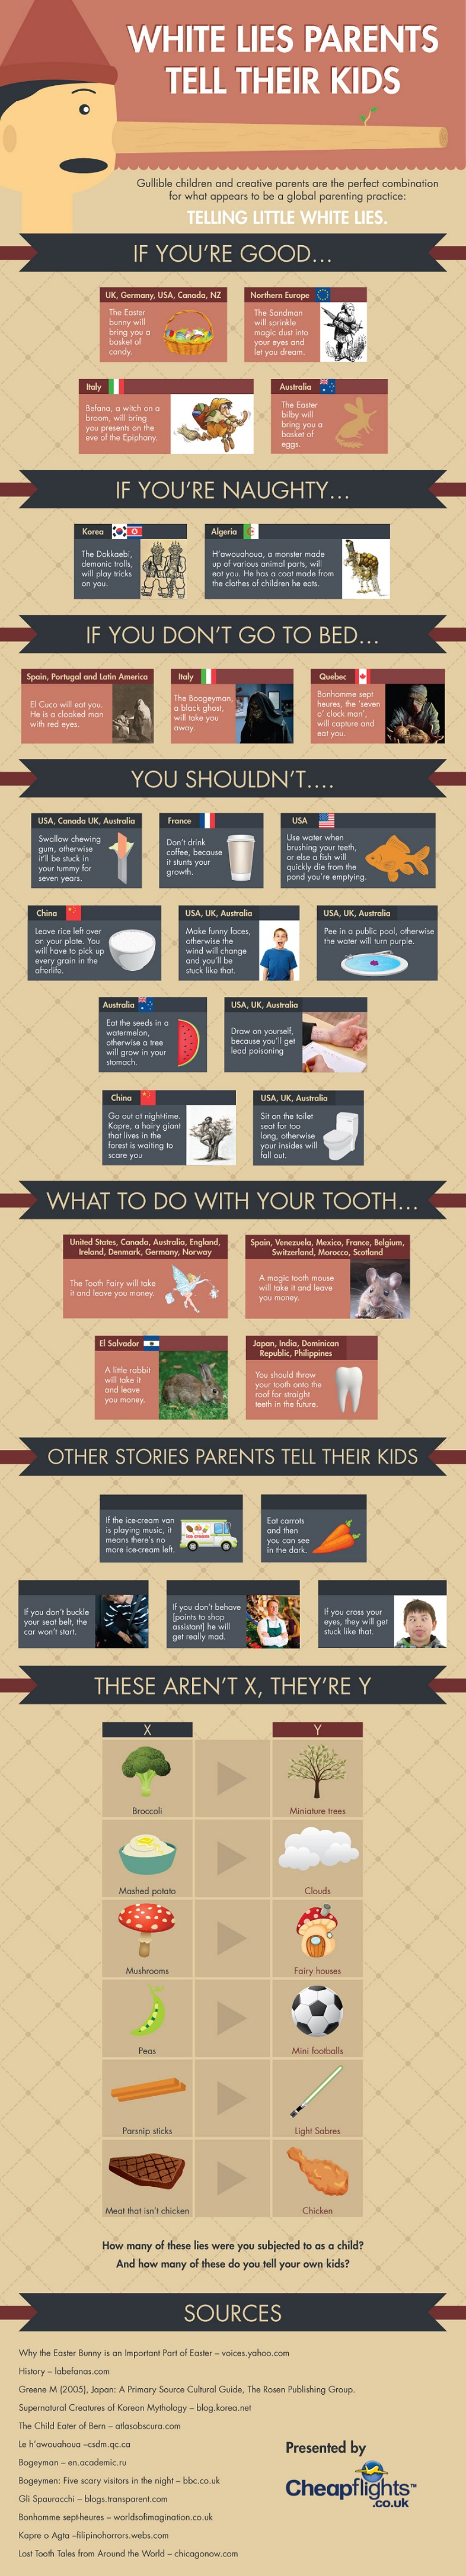 White Lies Parents Say-Infographic